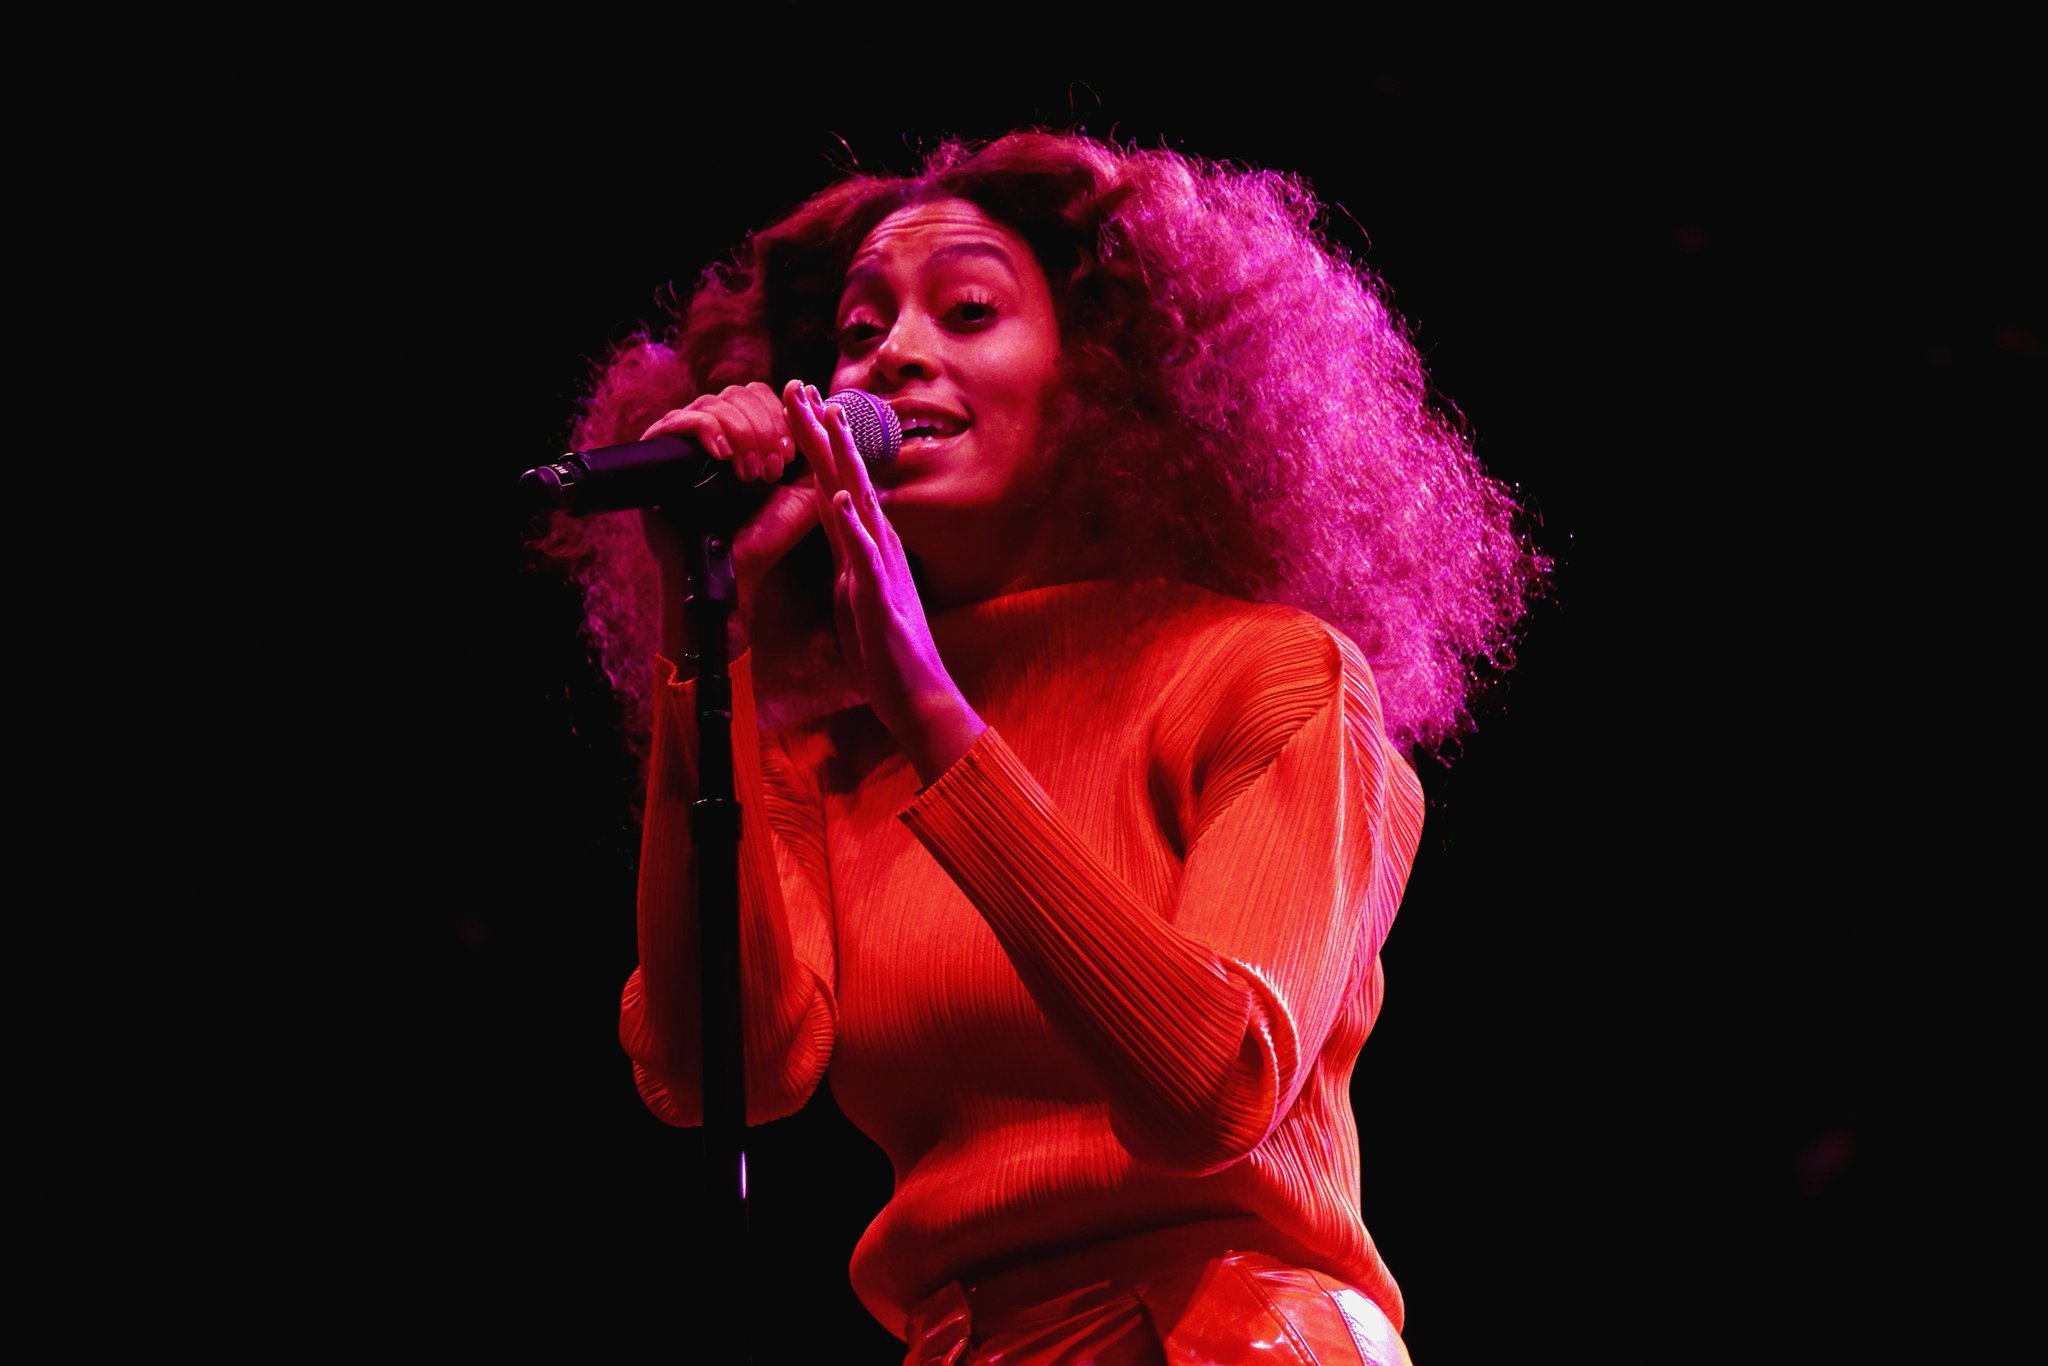 .@solangeknowles announces new album, due later this year. https://t.co/IddeFM42zV https://t.co/zBnfflV95l